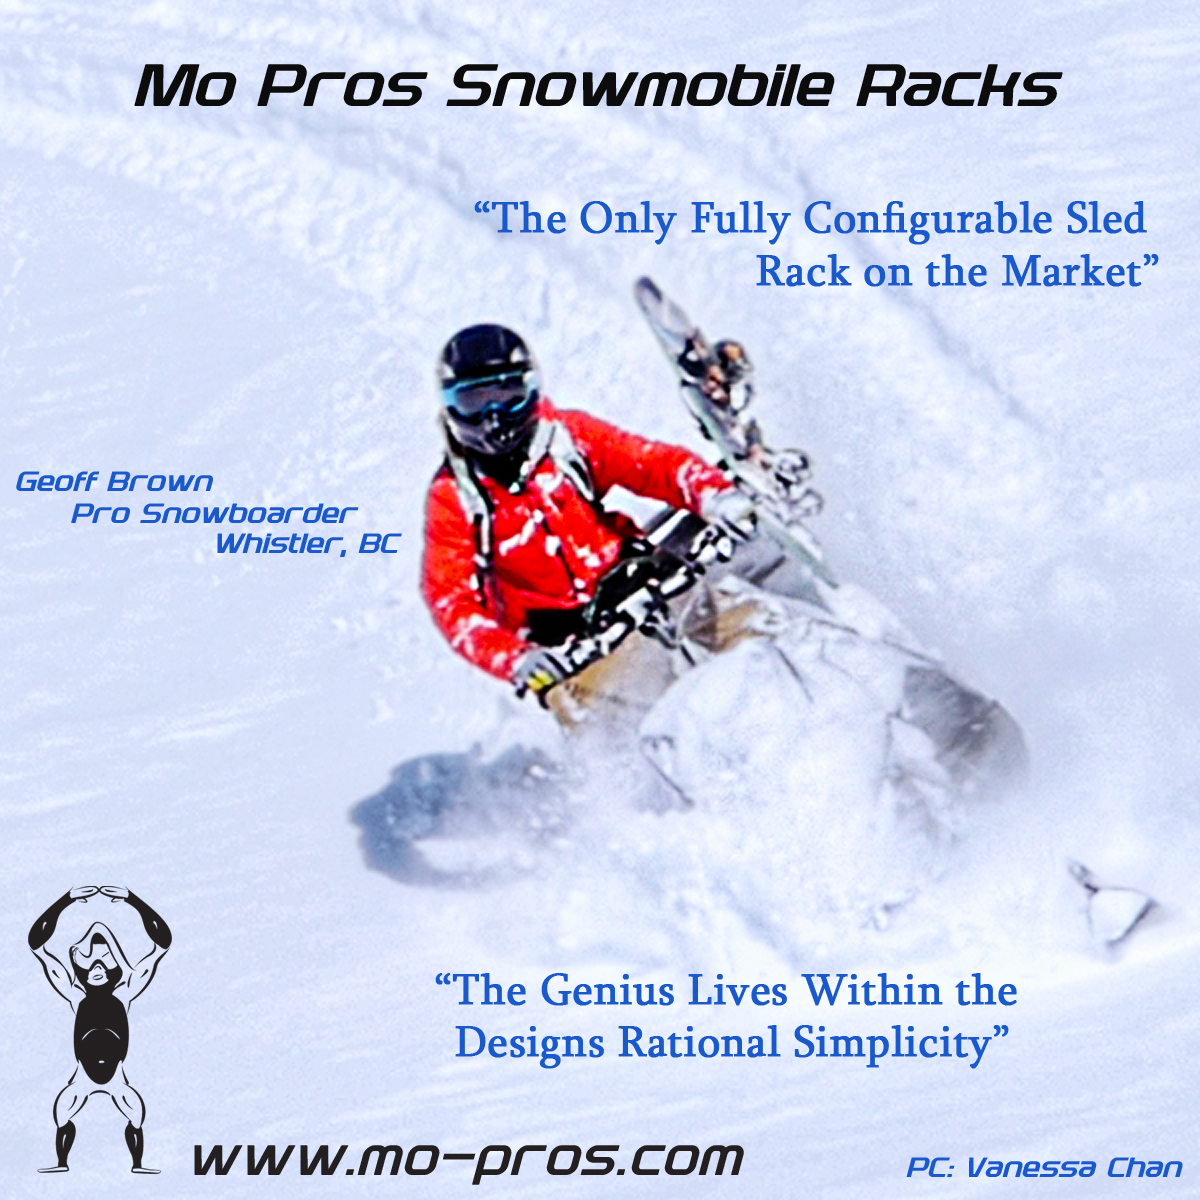 The only fully configurable snowmobile snowboard rack available on the market, the genius lives within the designs rational simplicity and cargo handling capability